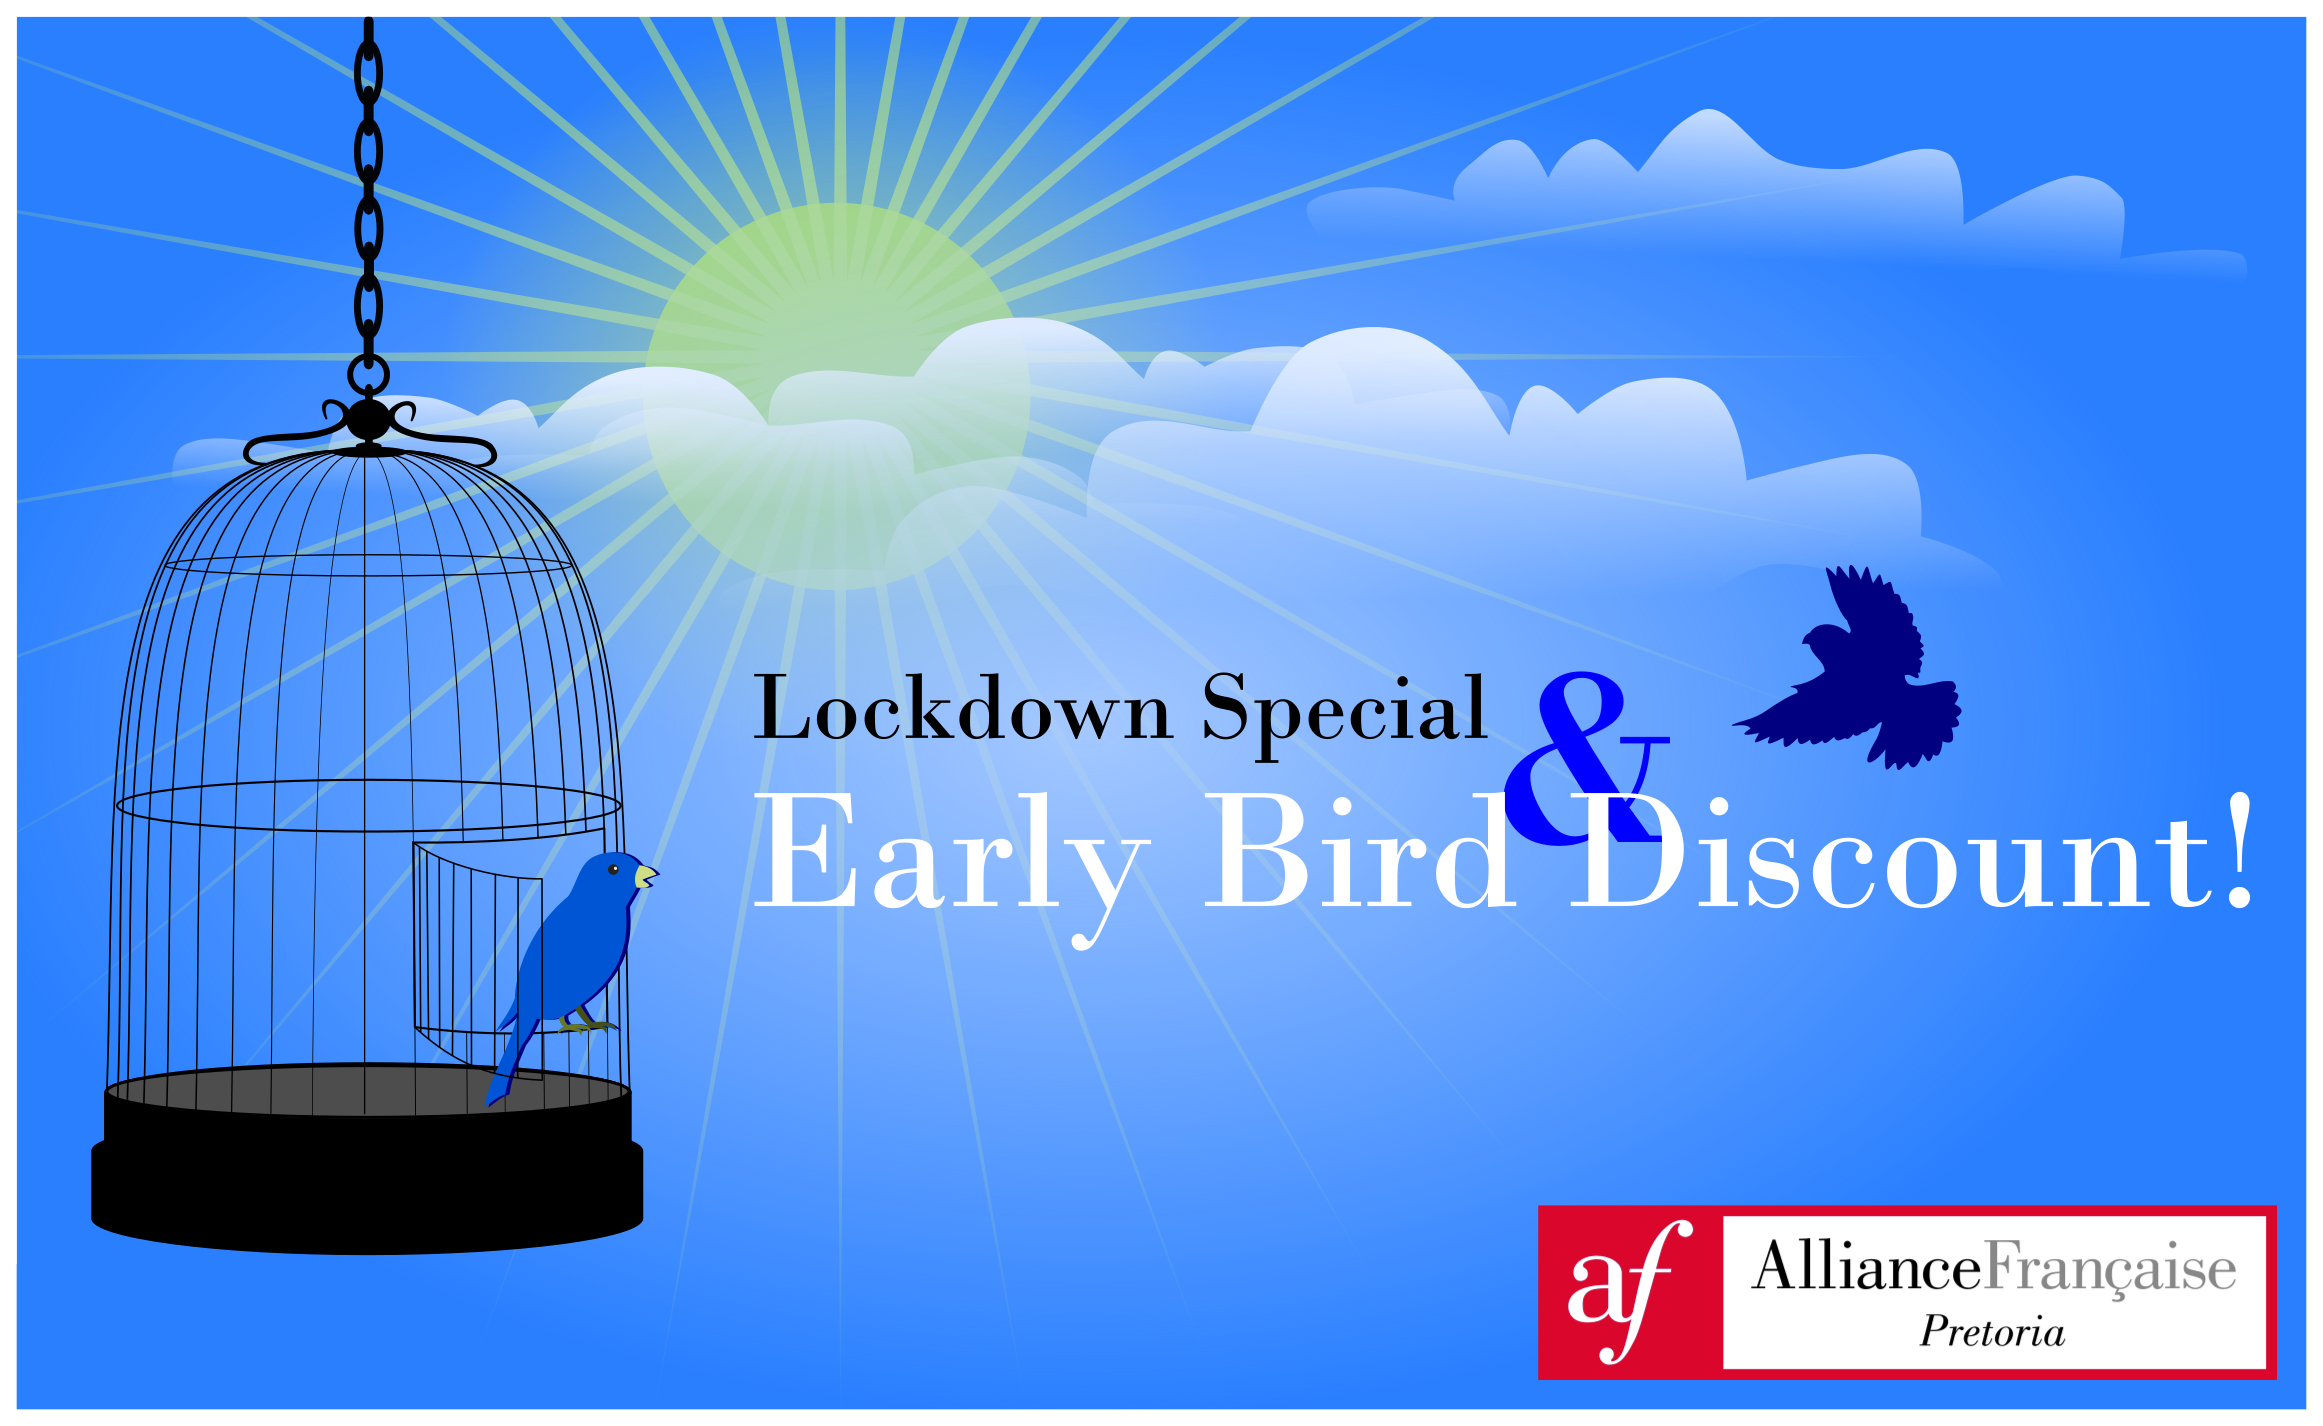 Lockdown Special & Early Bird Discount